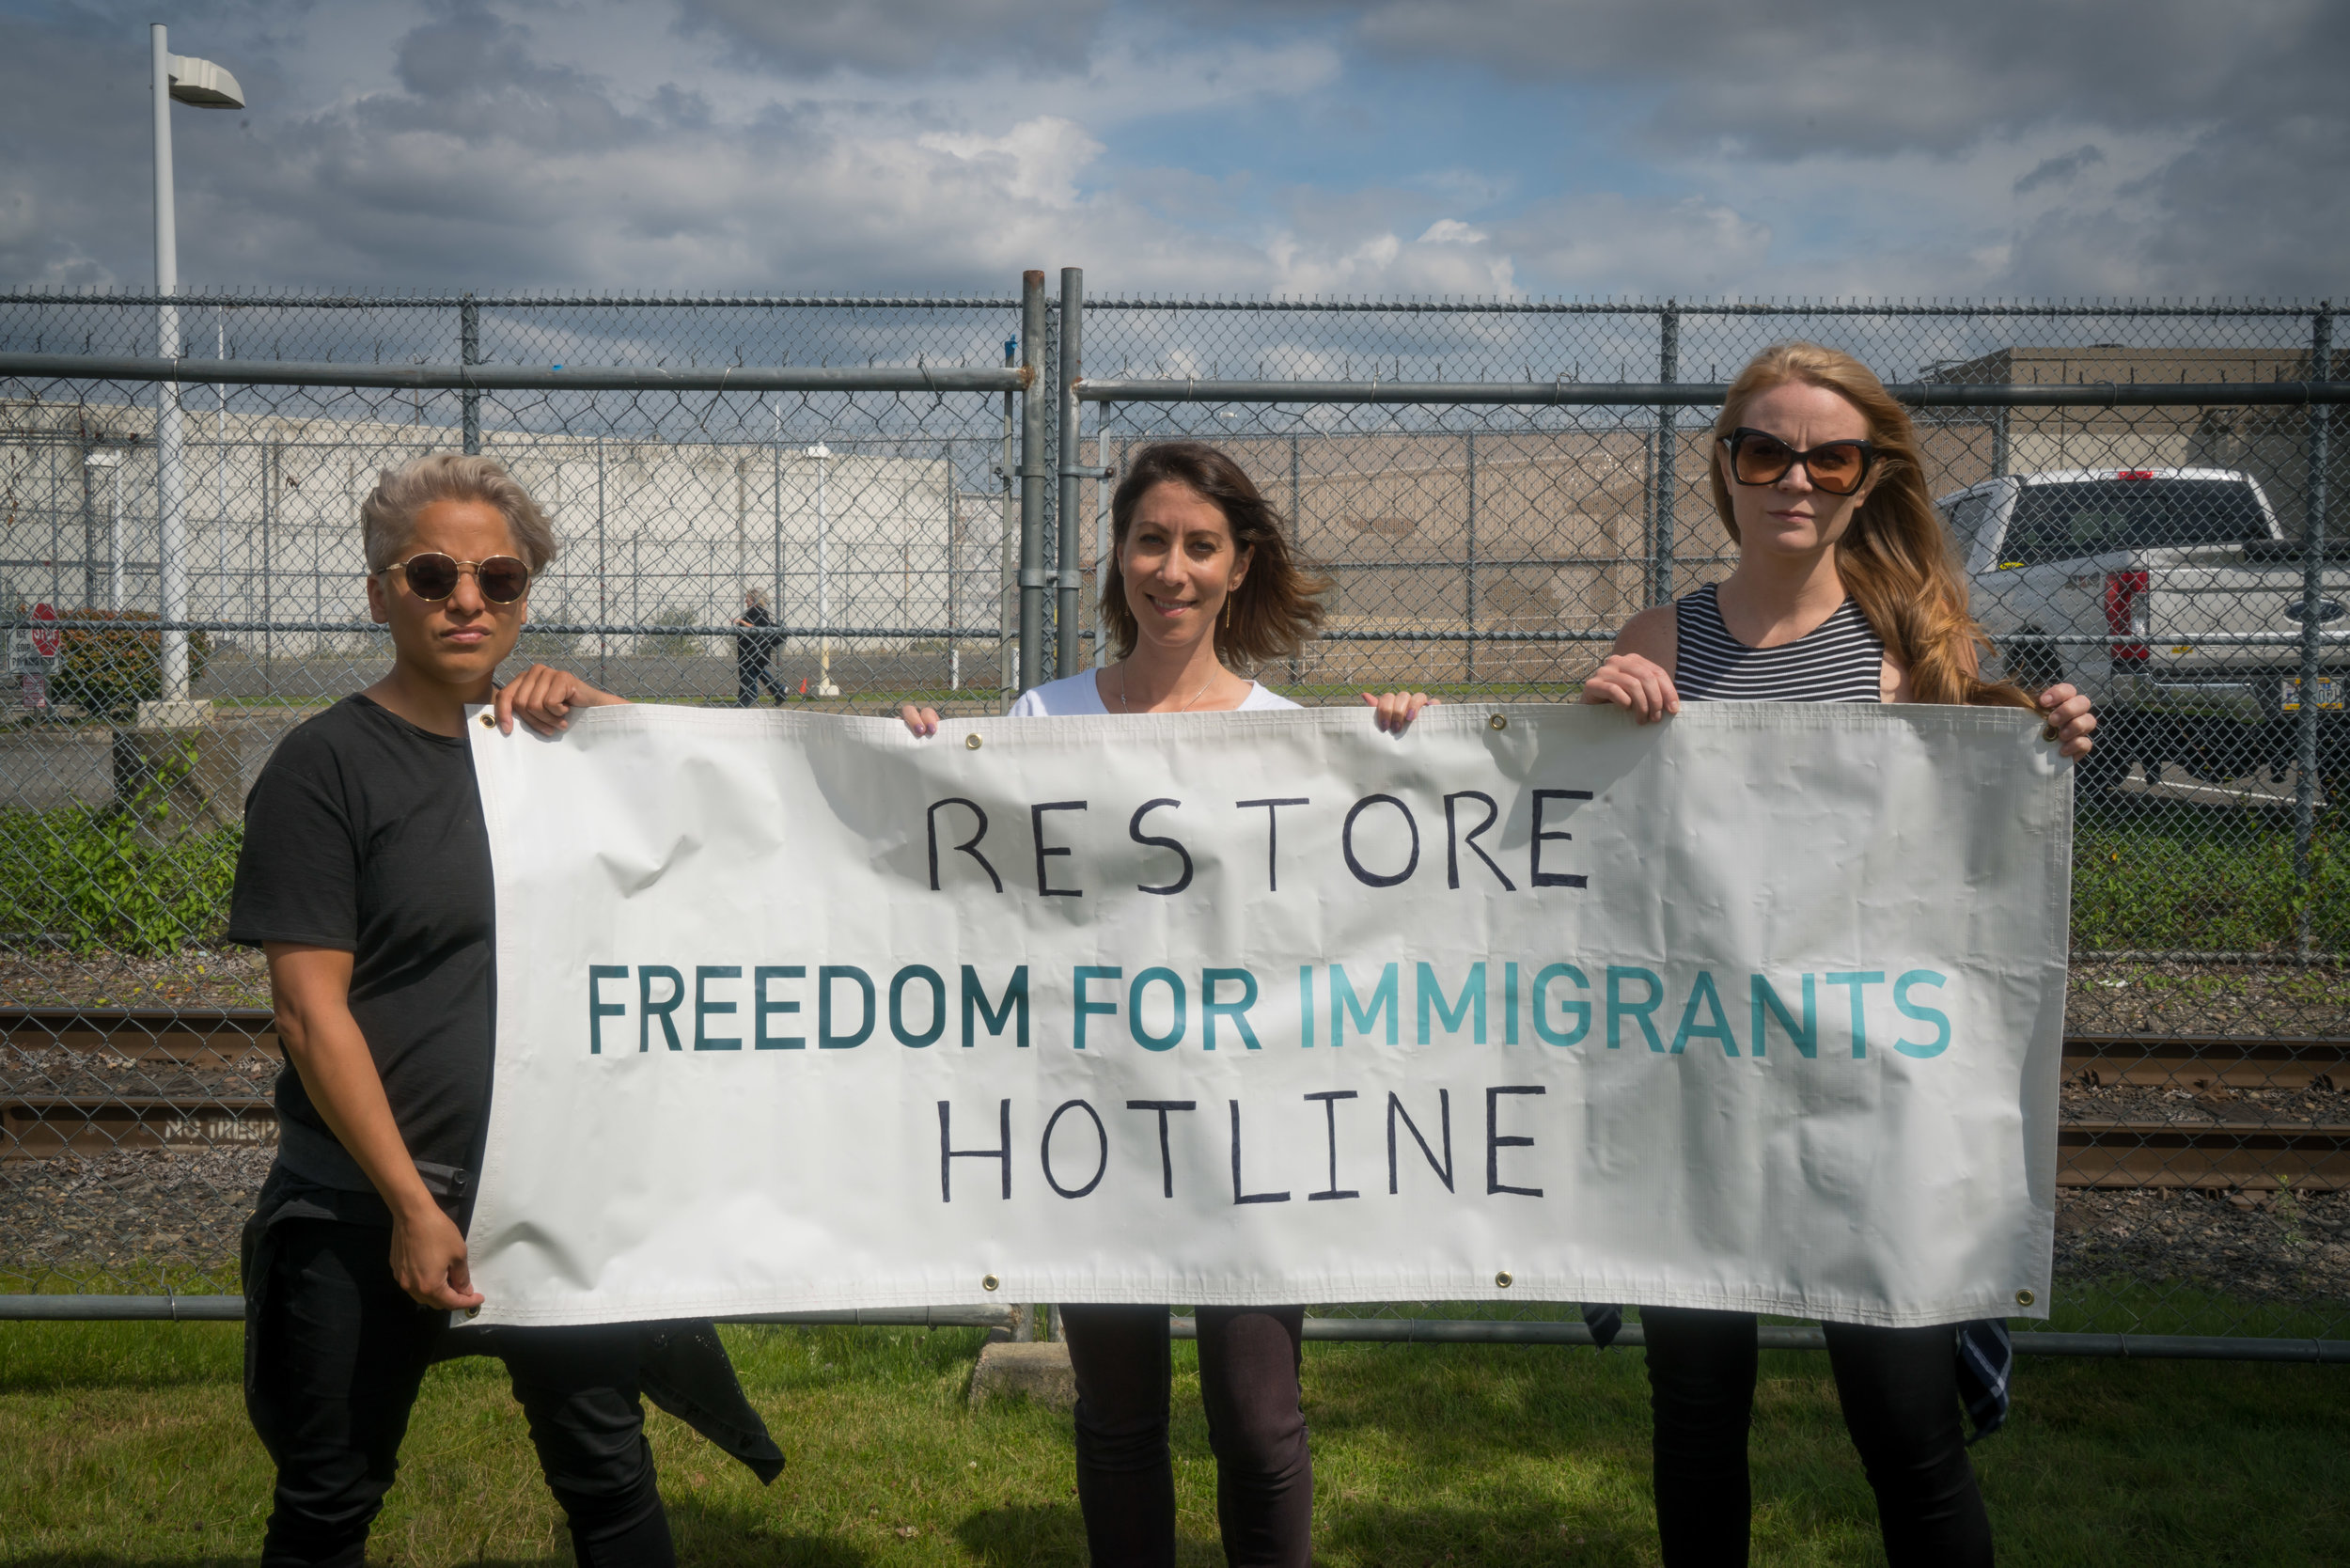 Orange Is The New Black  actors Vicci Martinez (left) and Emily Tarver (right) join Freedom for Immigrants' co-founder Christina Fialho outside the Northwest Detention Facility in Washington.